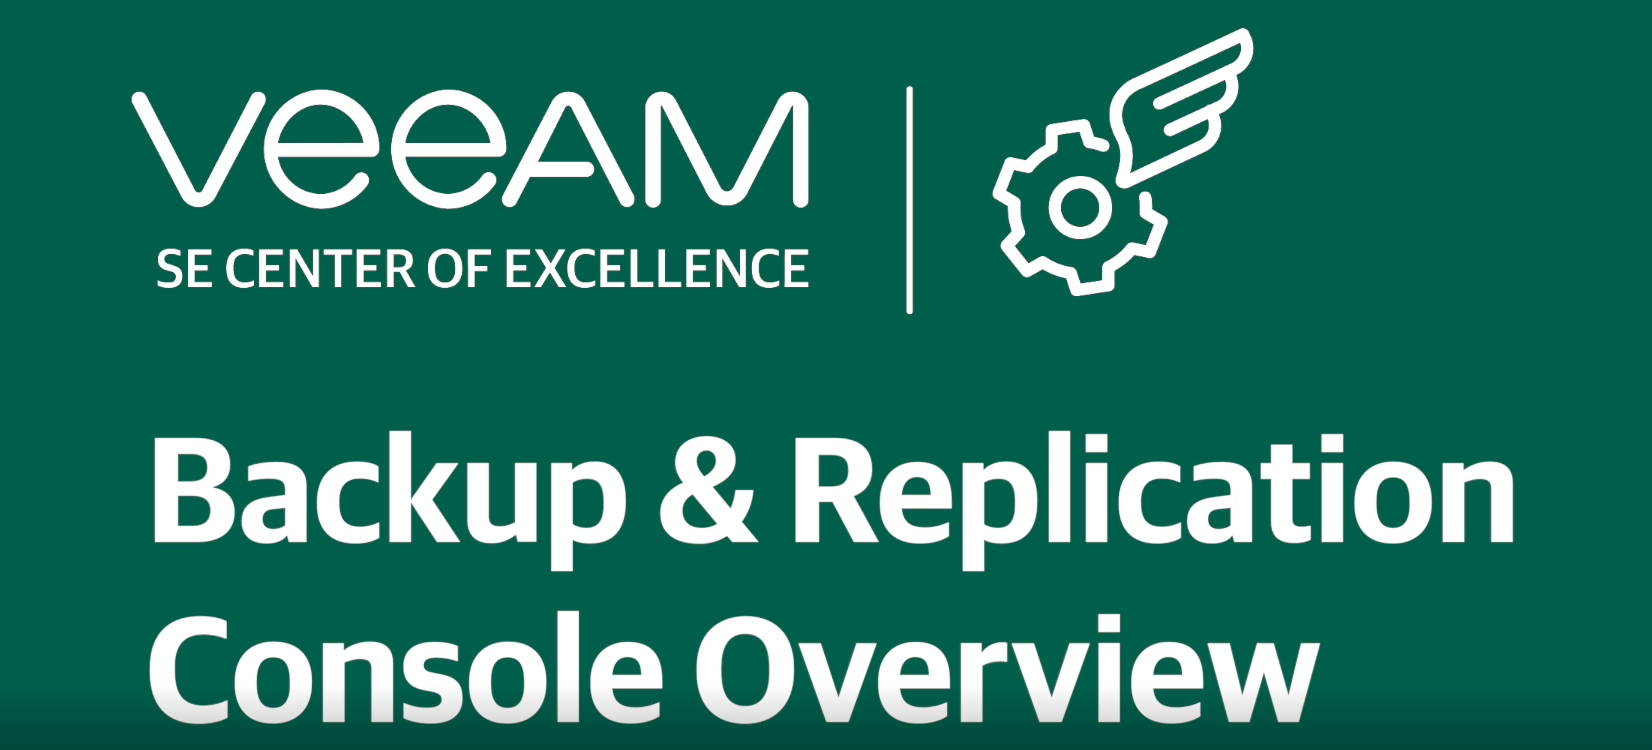 Veeam Backup & Replication console overview